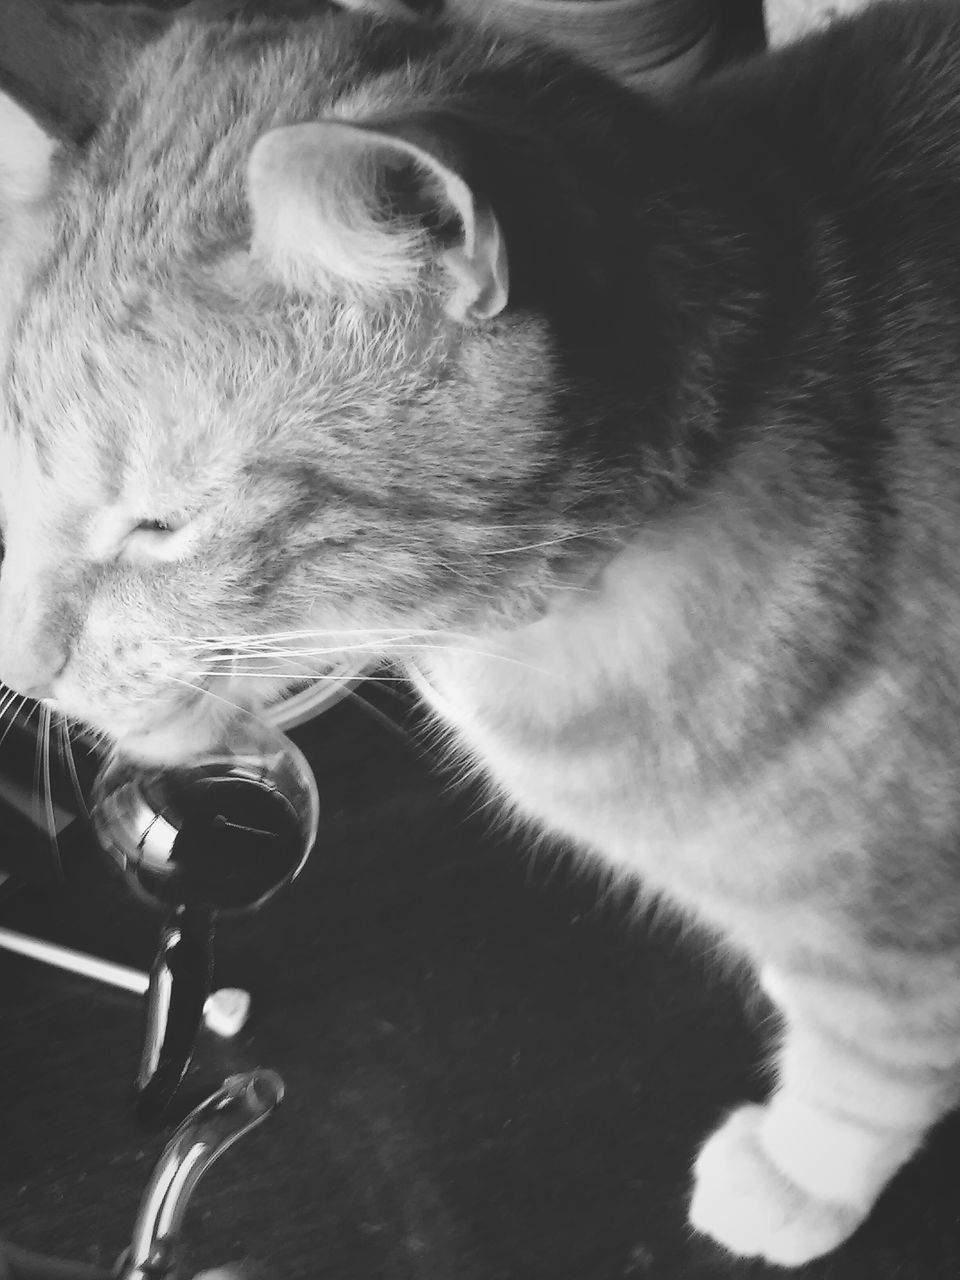 domestic cat, one animal, animal themes, pets, mammal, domestic animals, feline, indoors, no people, whisker, close-up, day